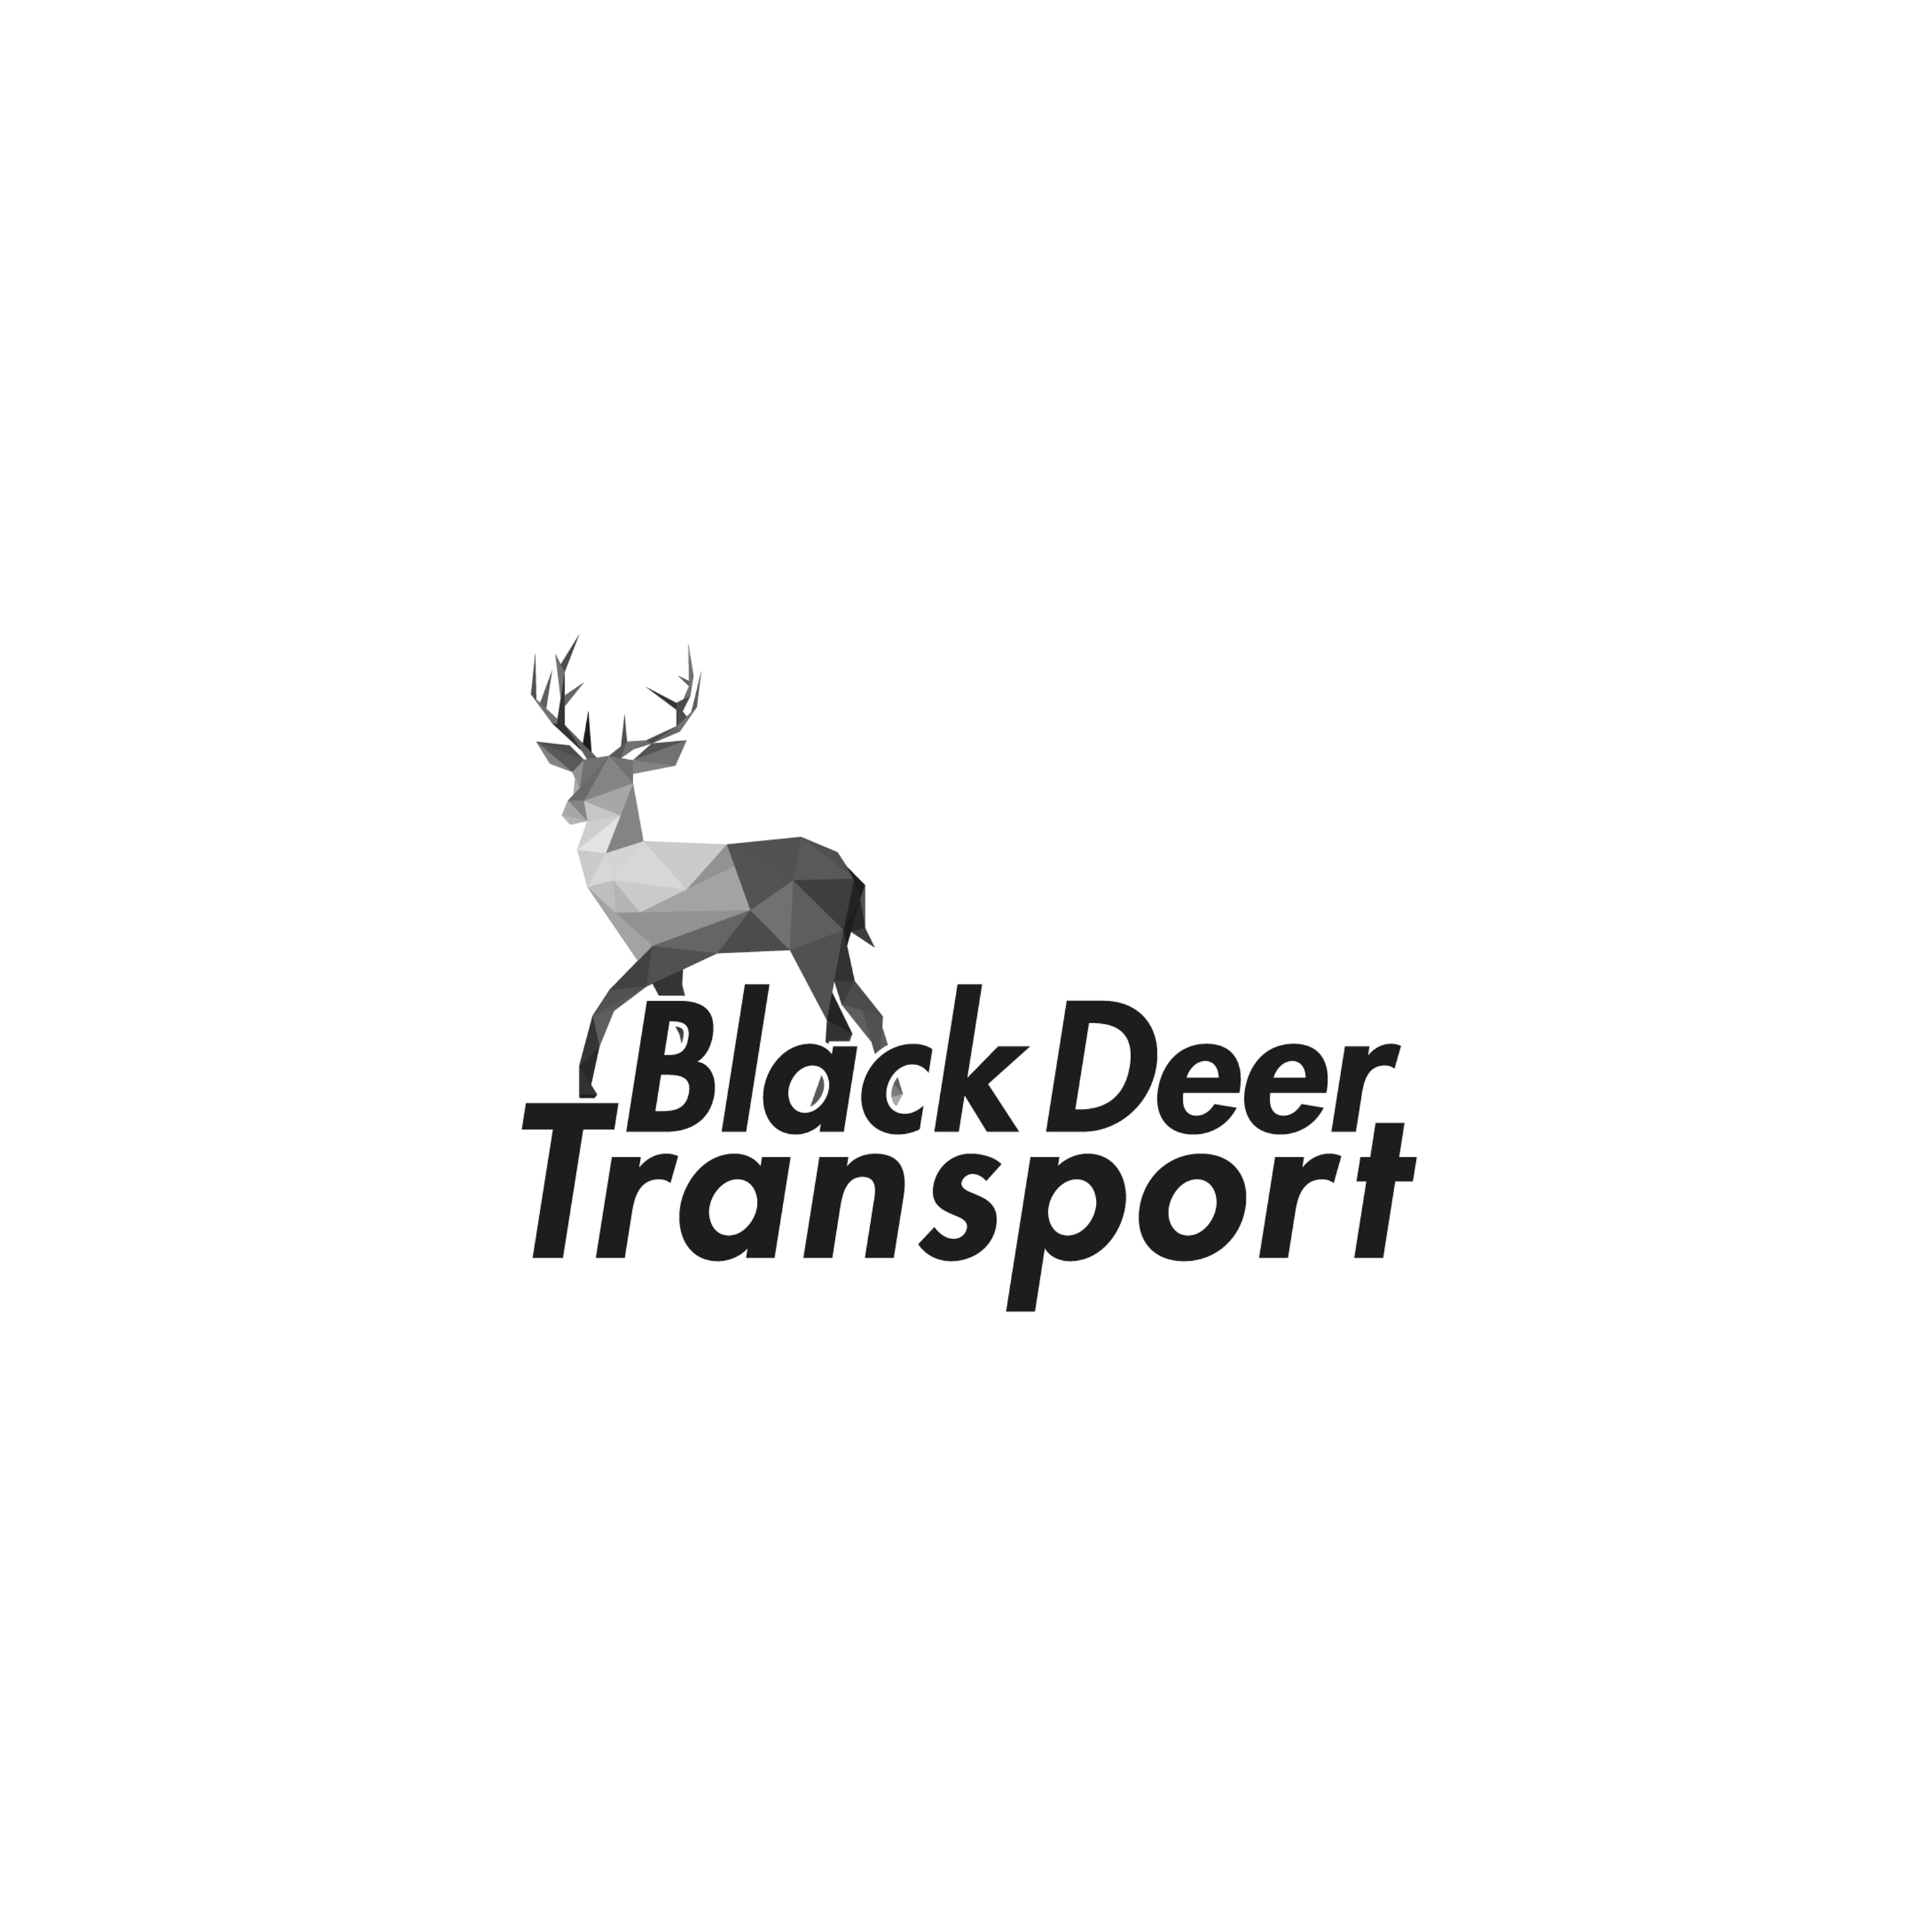 Black Deer Transport Logo Design